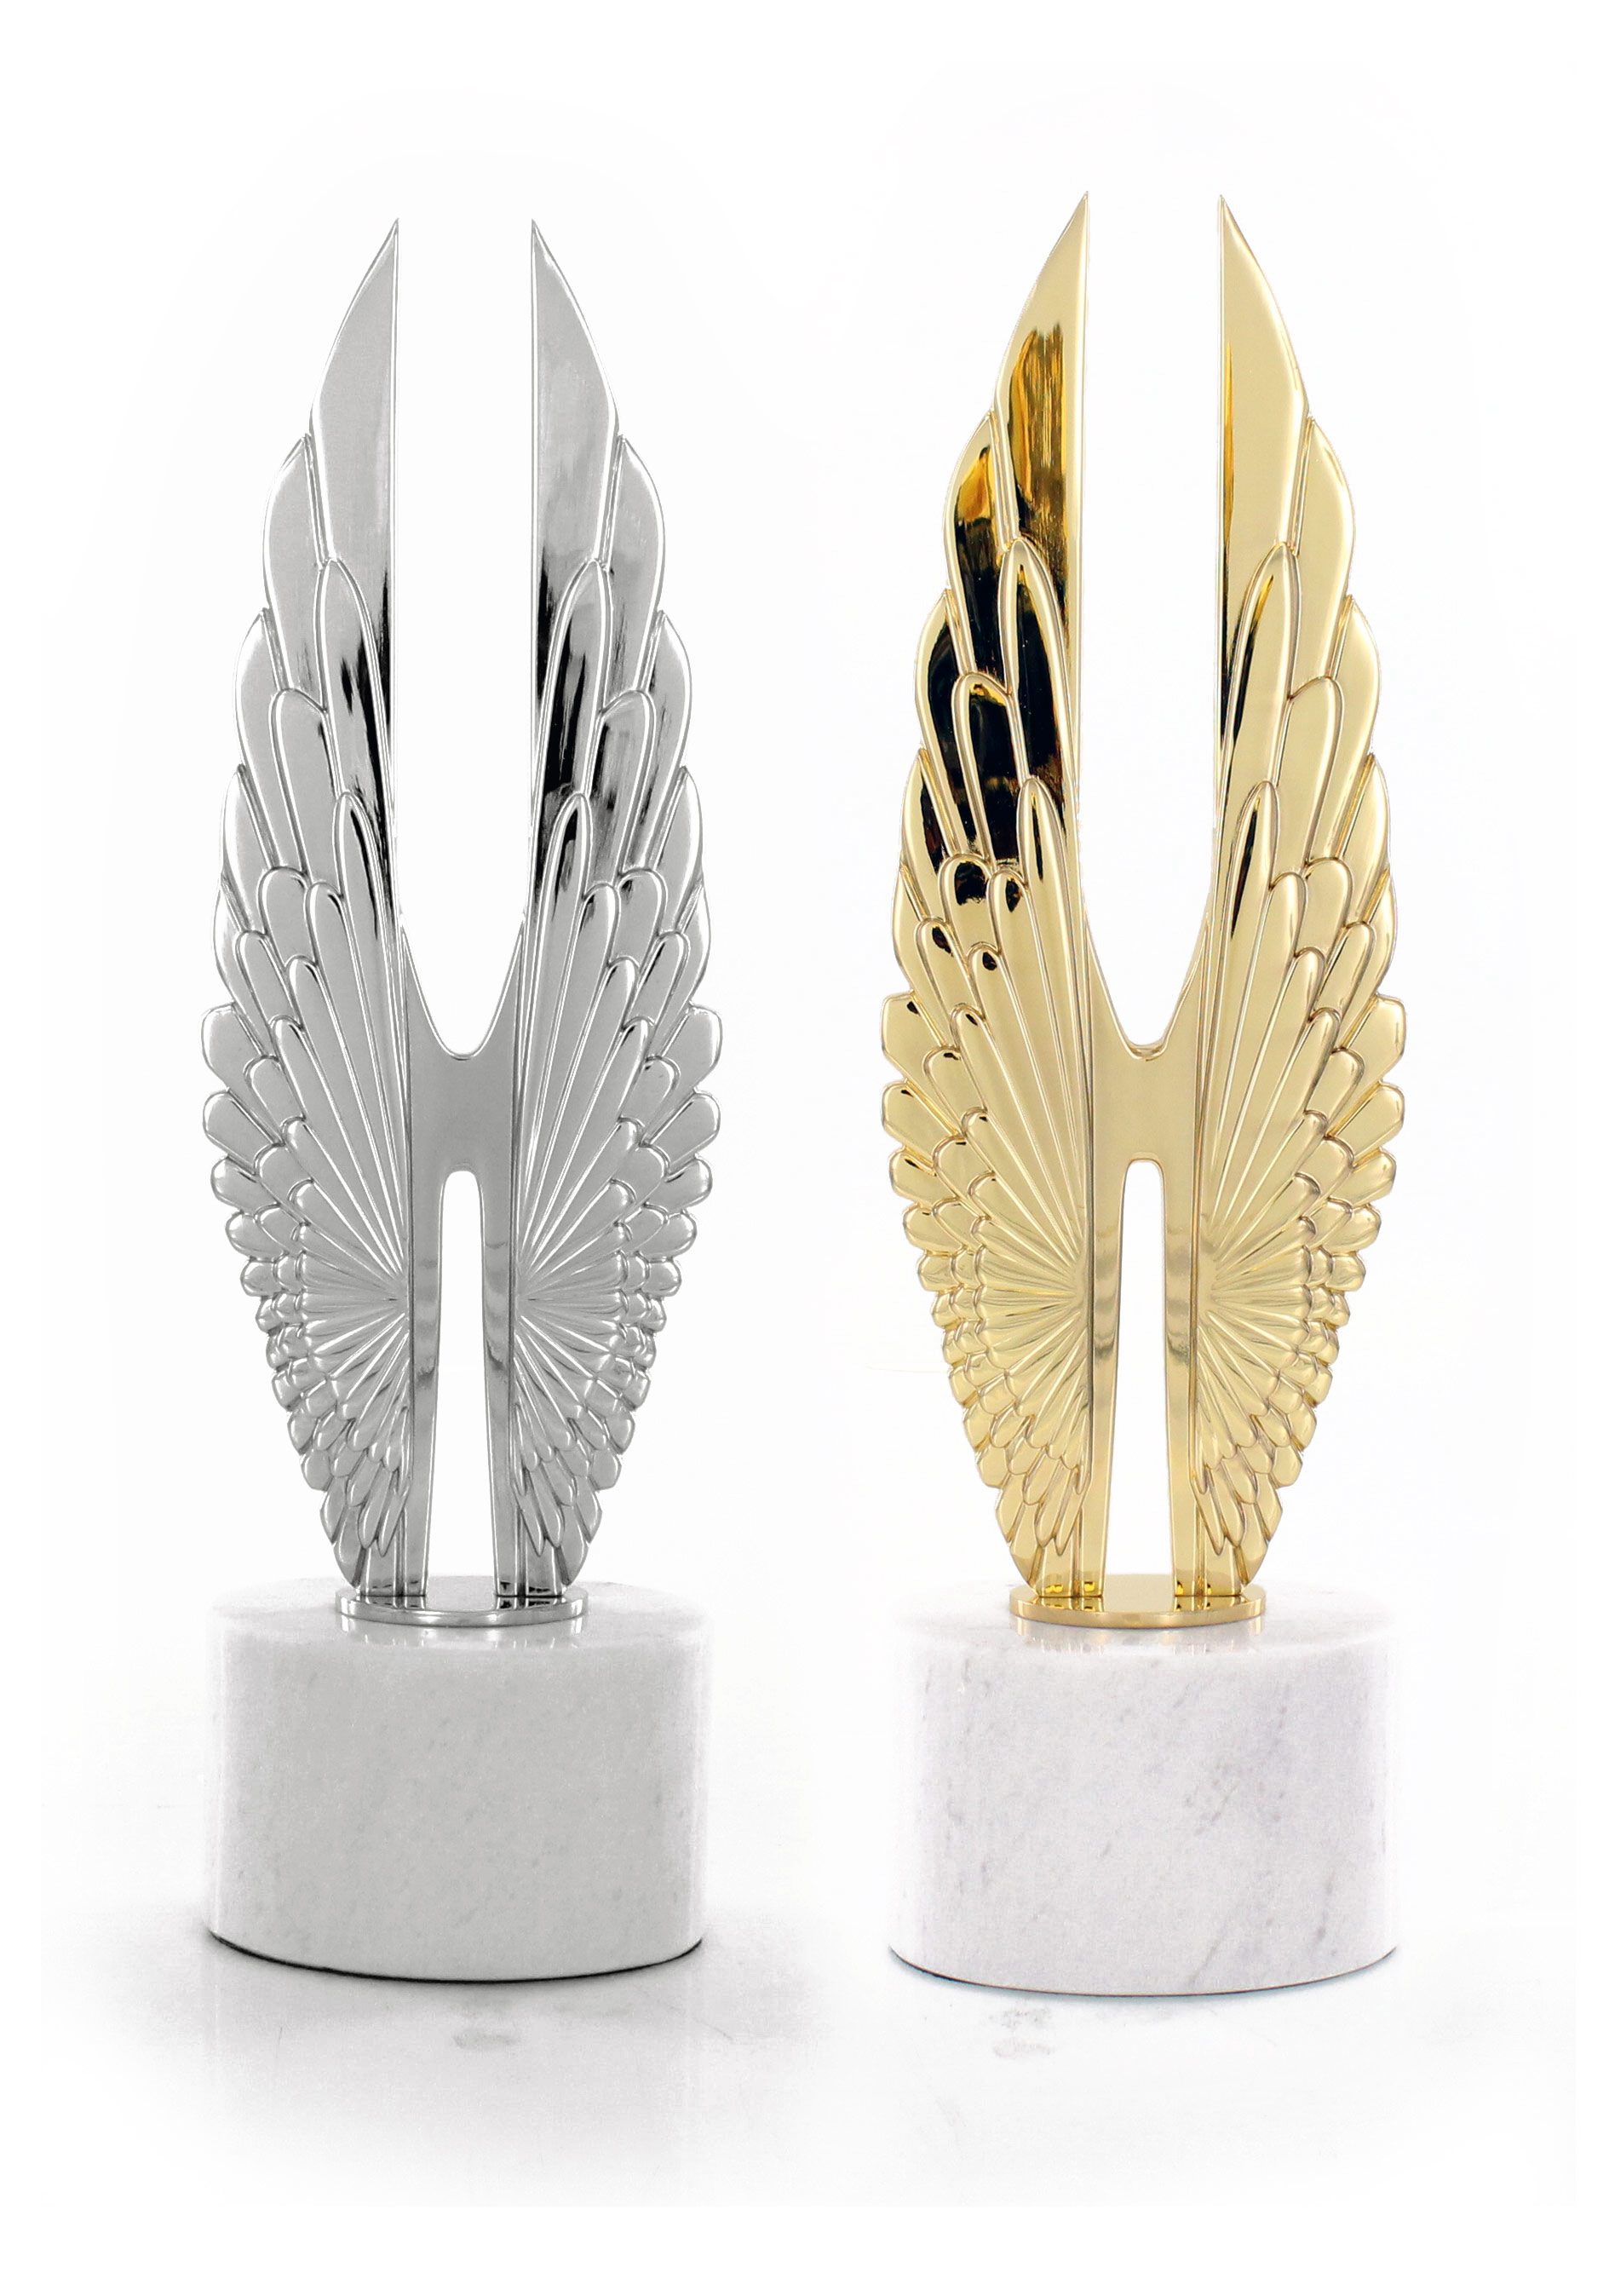 Hermes Creative Awards Honoring The Messengers And Creators Of